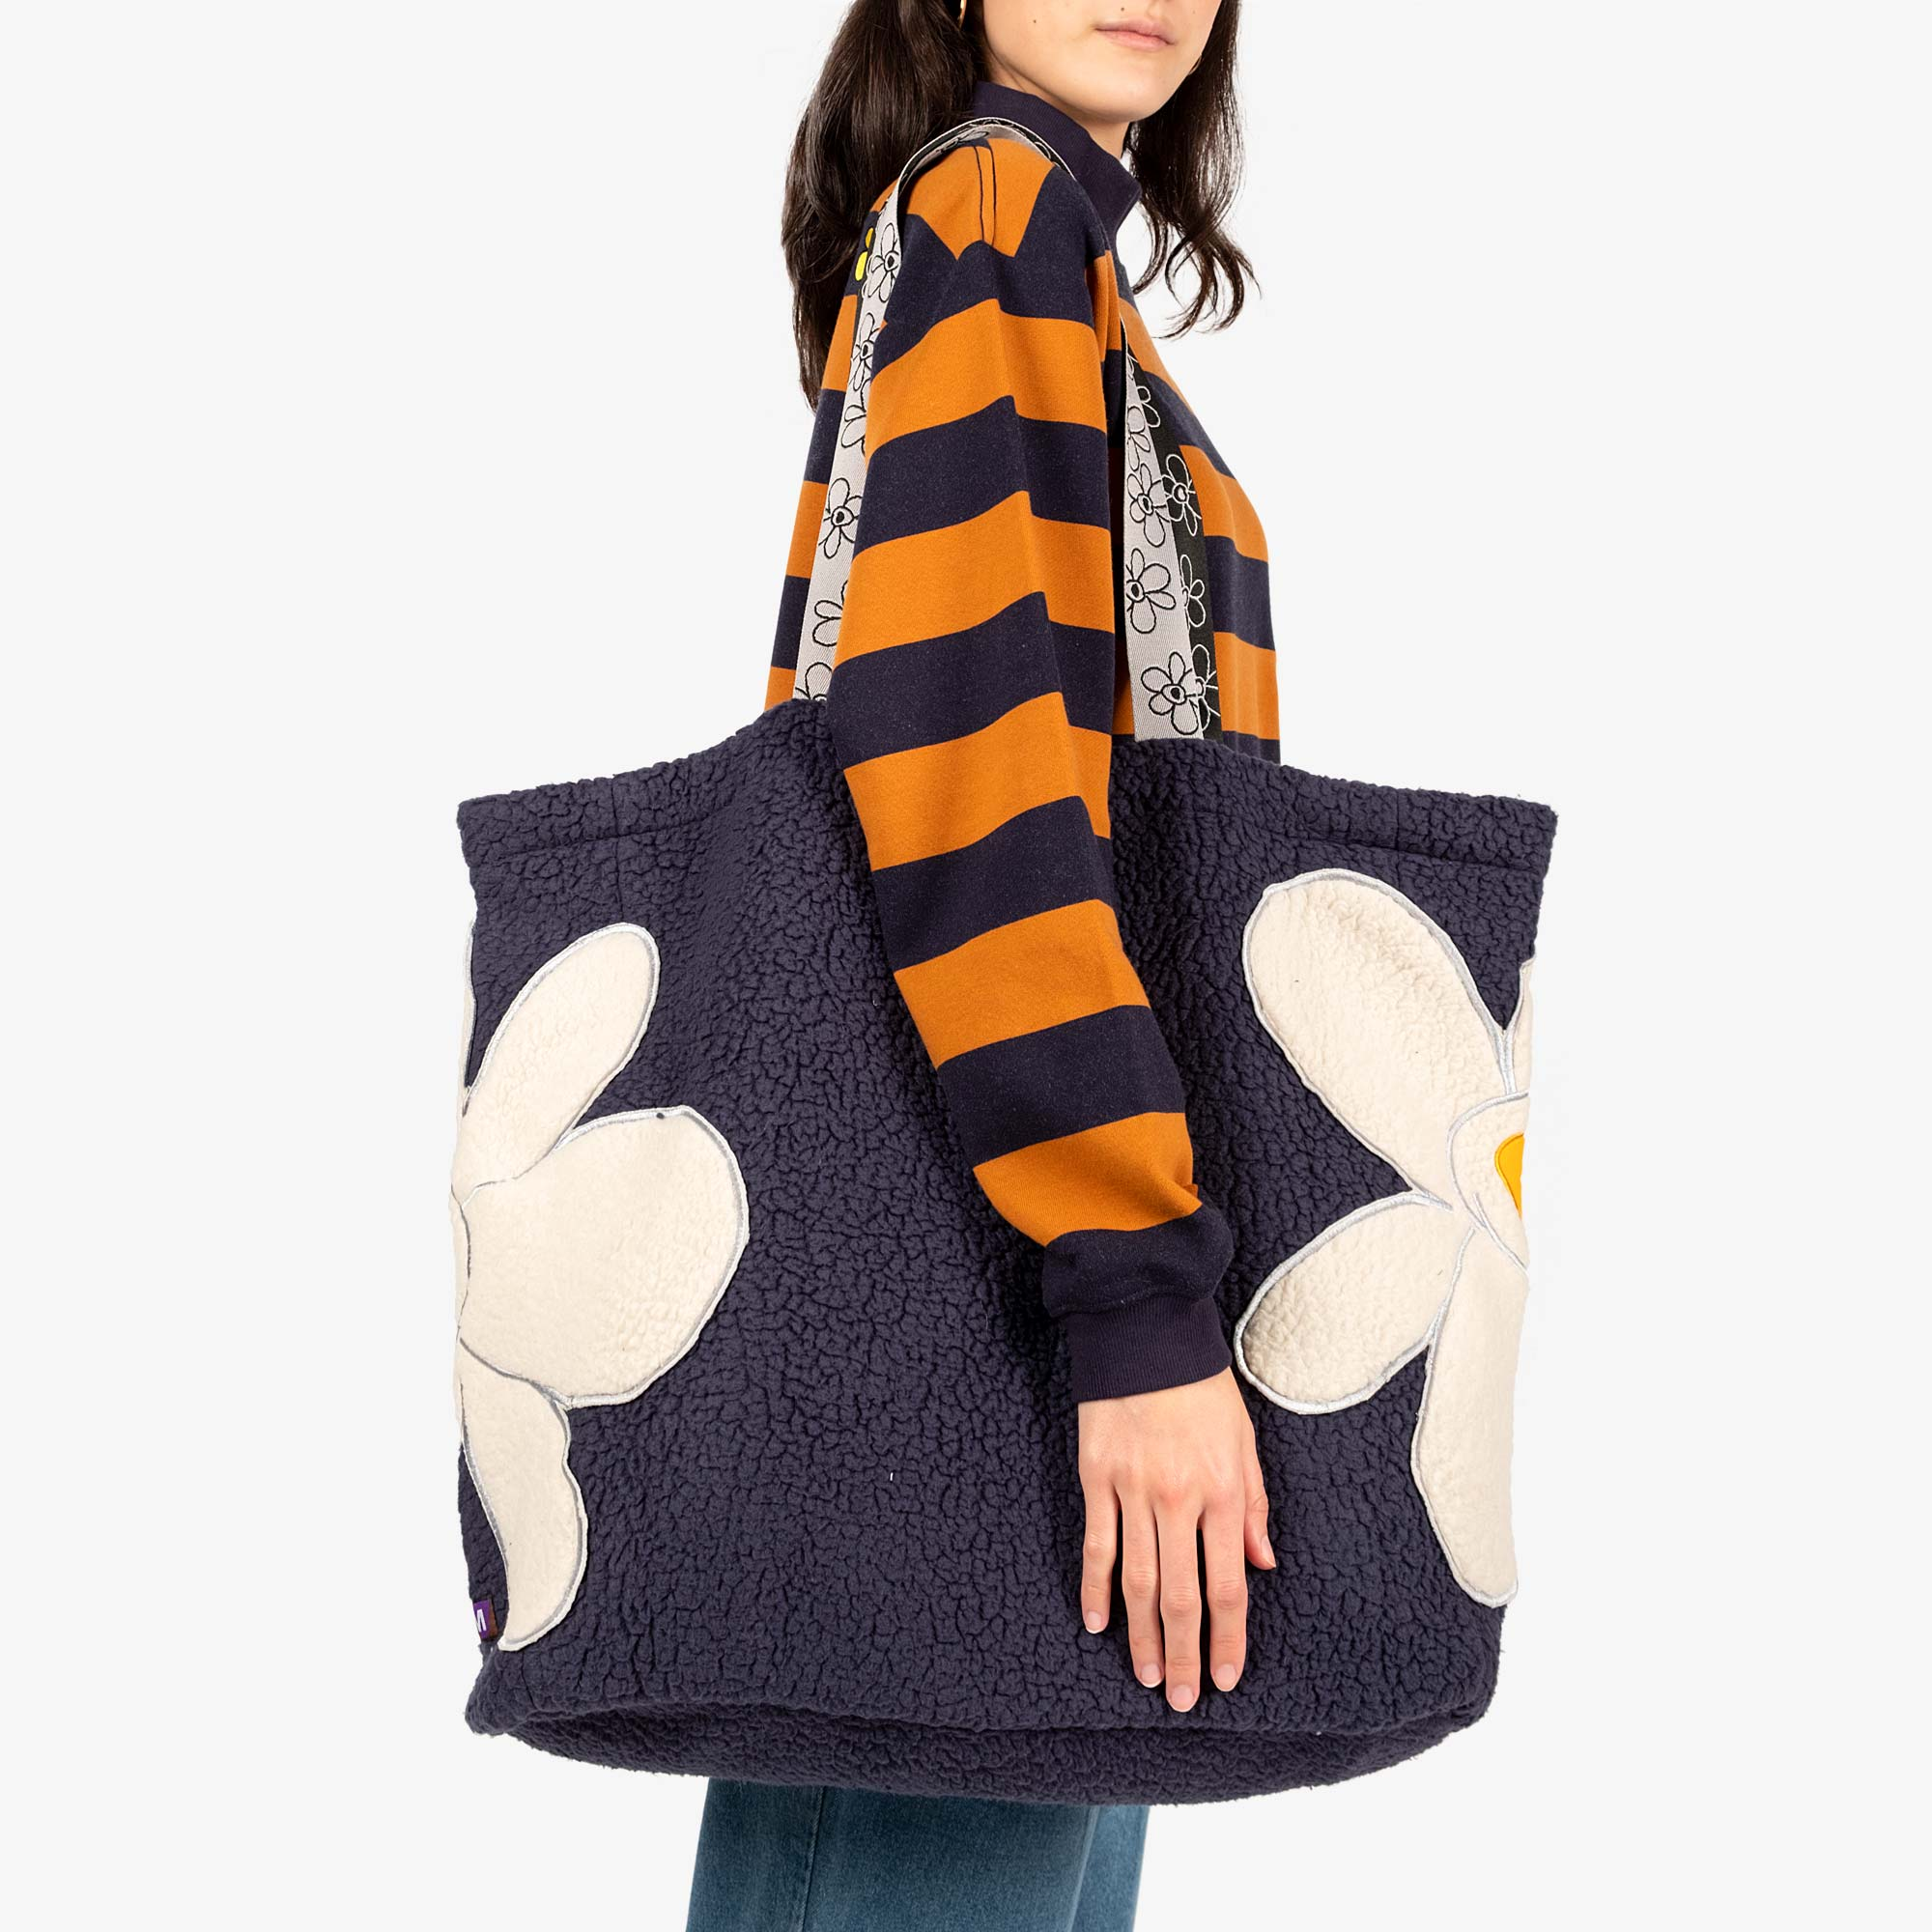 Perks and Mini (P.A.M.) Popping Gestures Recycled Shearling Tote Bag - Navy Fog 2